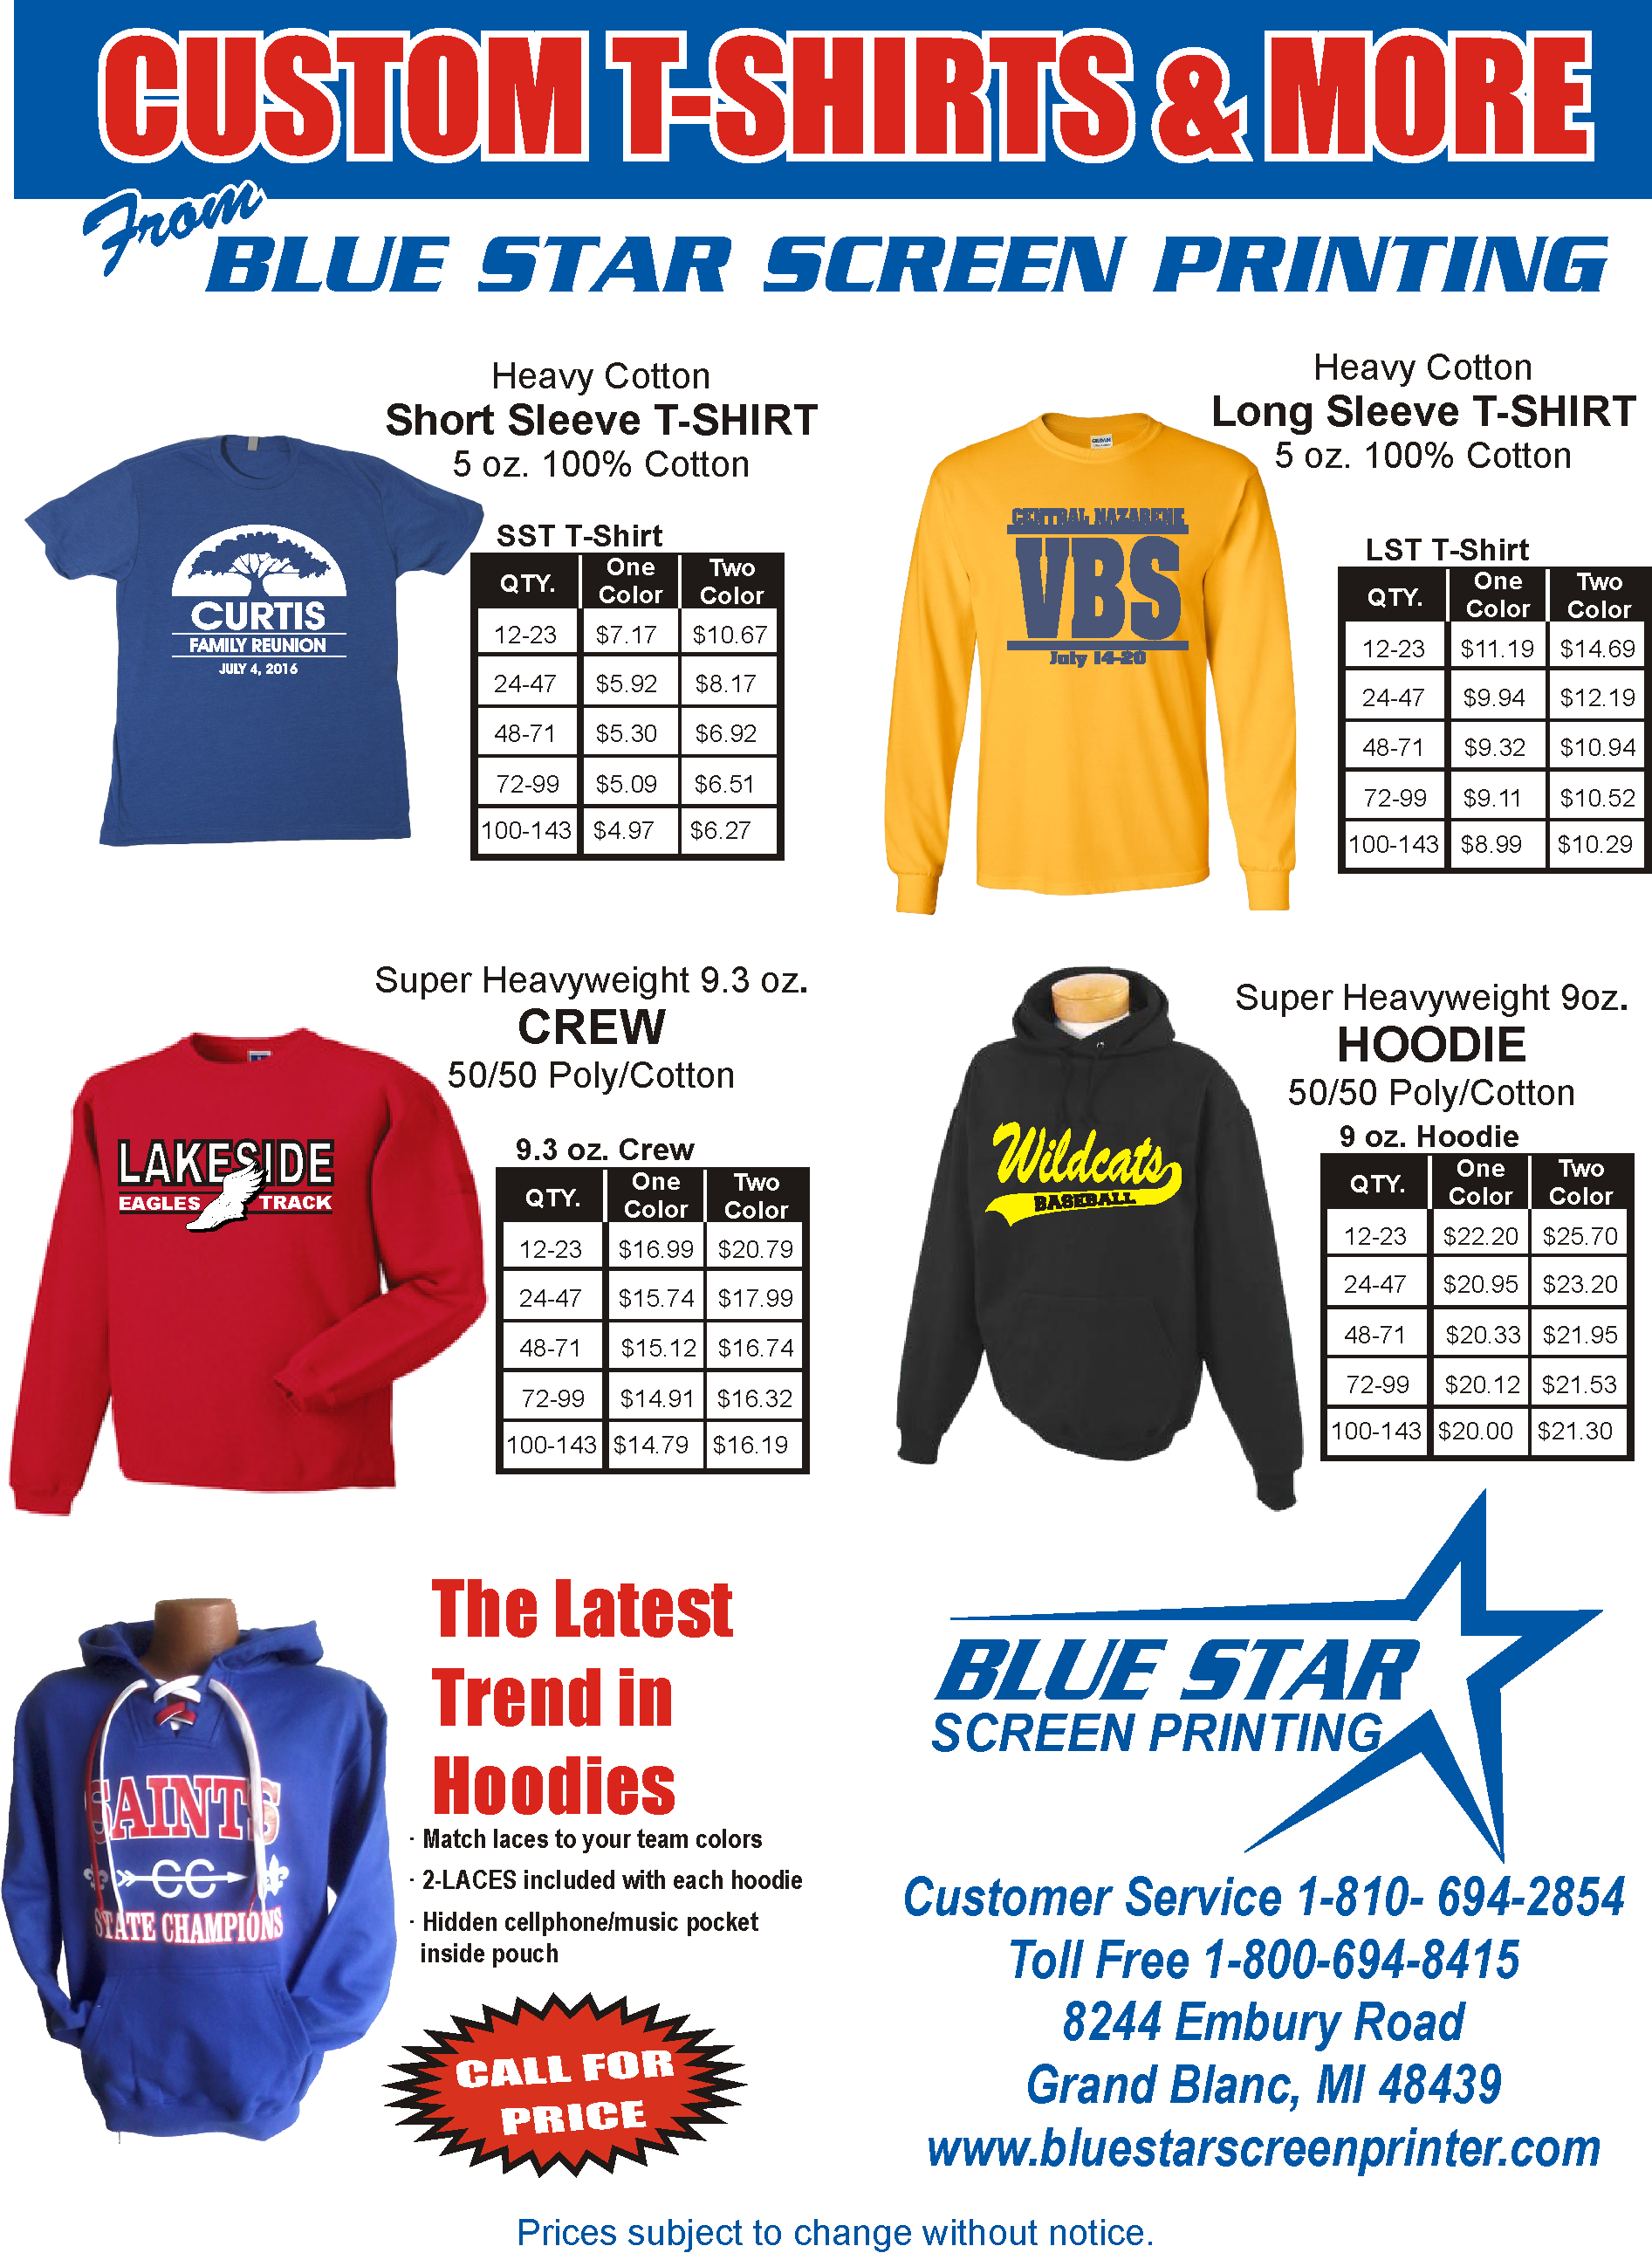 Screen Printing: Blue Star provides custom screen printing for all types of organizations. Whether it is for teams, corporate, schools, church or non-profit groups, we can fulfill your needs. We provide printing for the following: Jackets, Uniforms, T-Shirts, Sweatshirts, Hoodies, Bags, And much more!